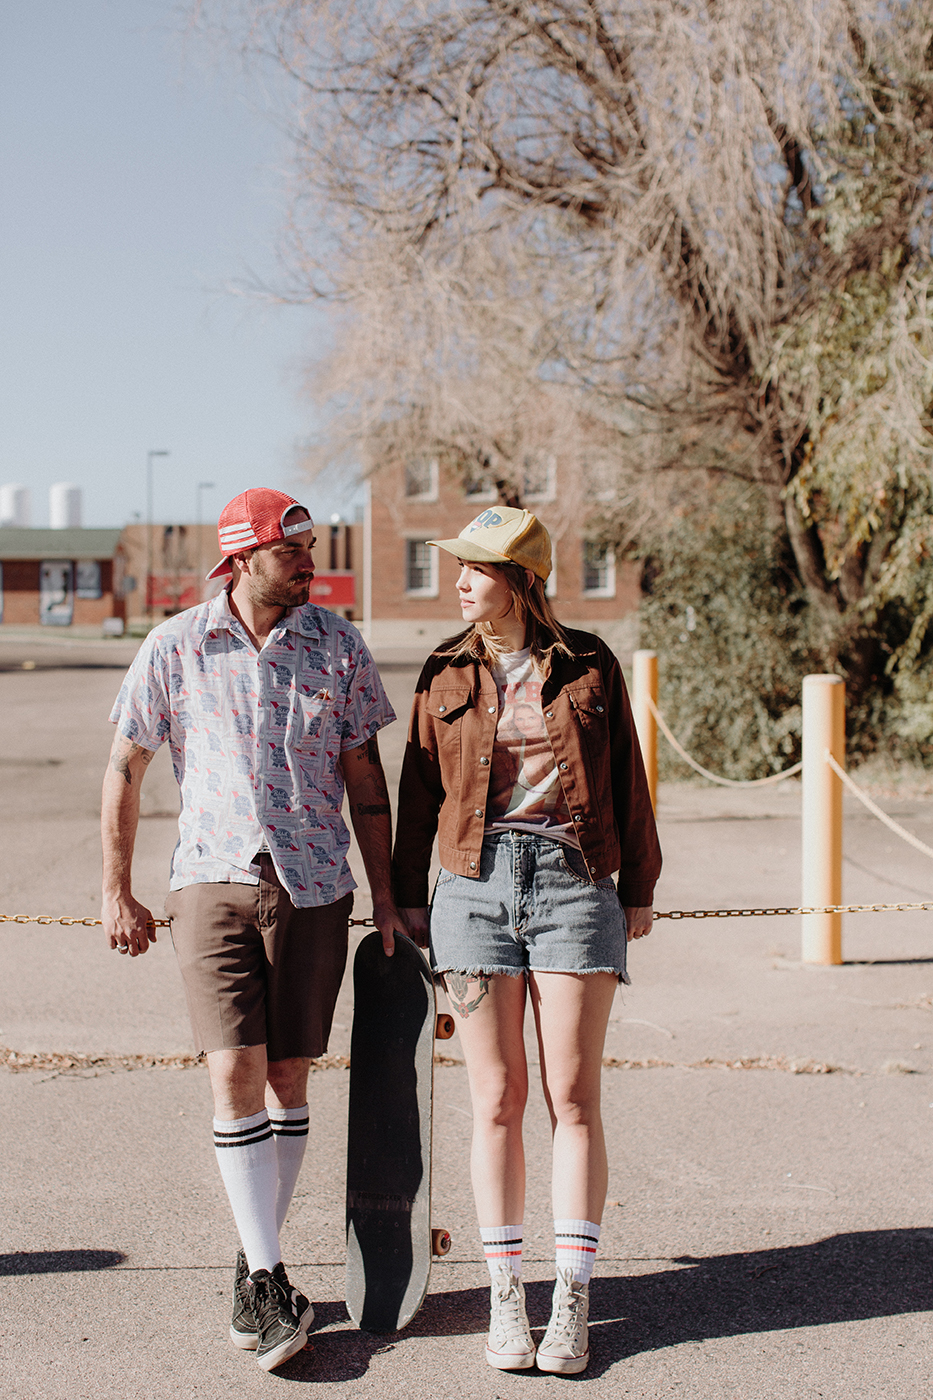 70s-themed-skateboarding-engagement-session-denver-colorado-39.jpg